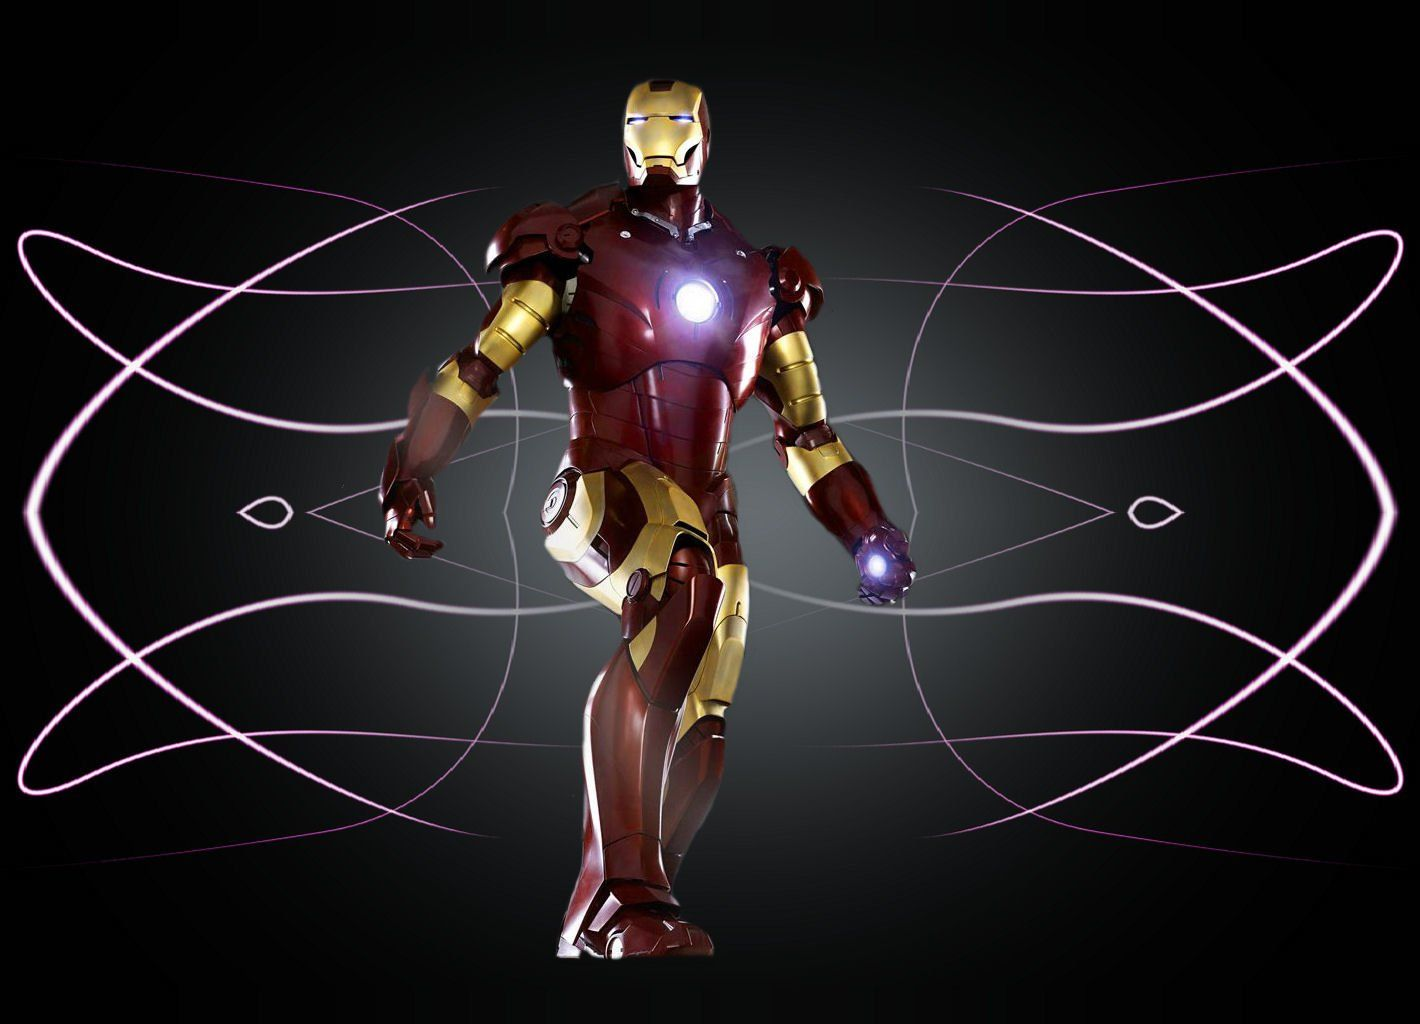 Hd wallpaper man - Iron Man Hd Wallpaper Collection For Free Download